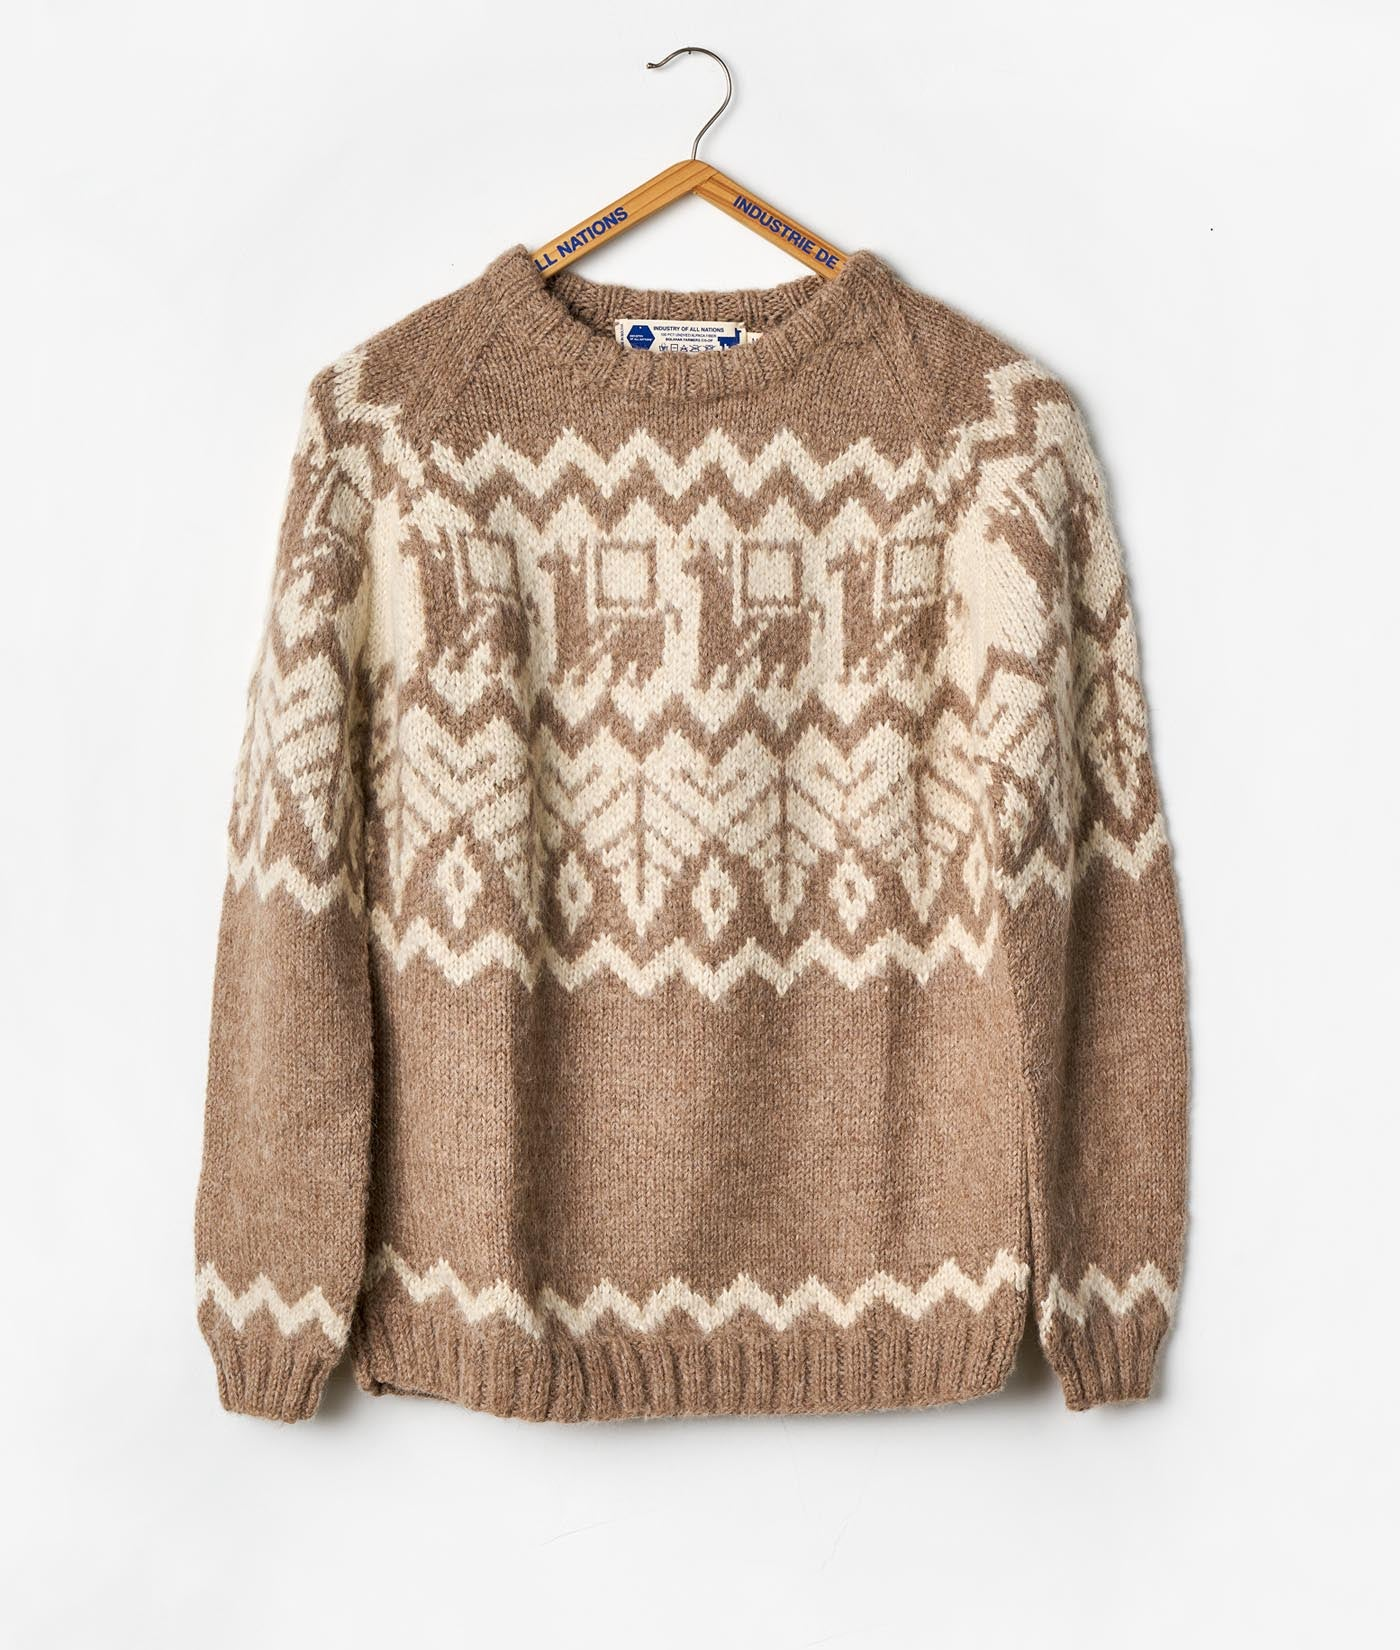 Industry of All Nations Alpaca Hand Knit Ethical Sweater